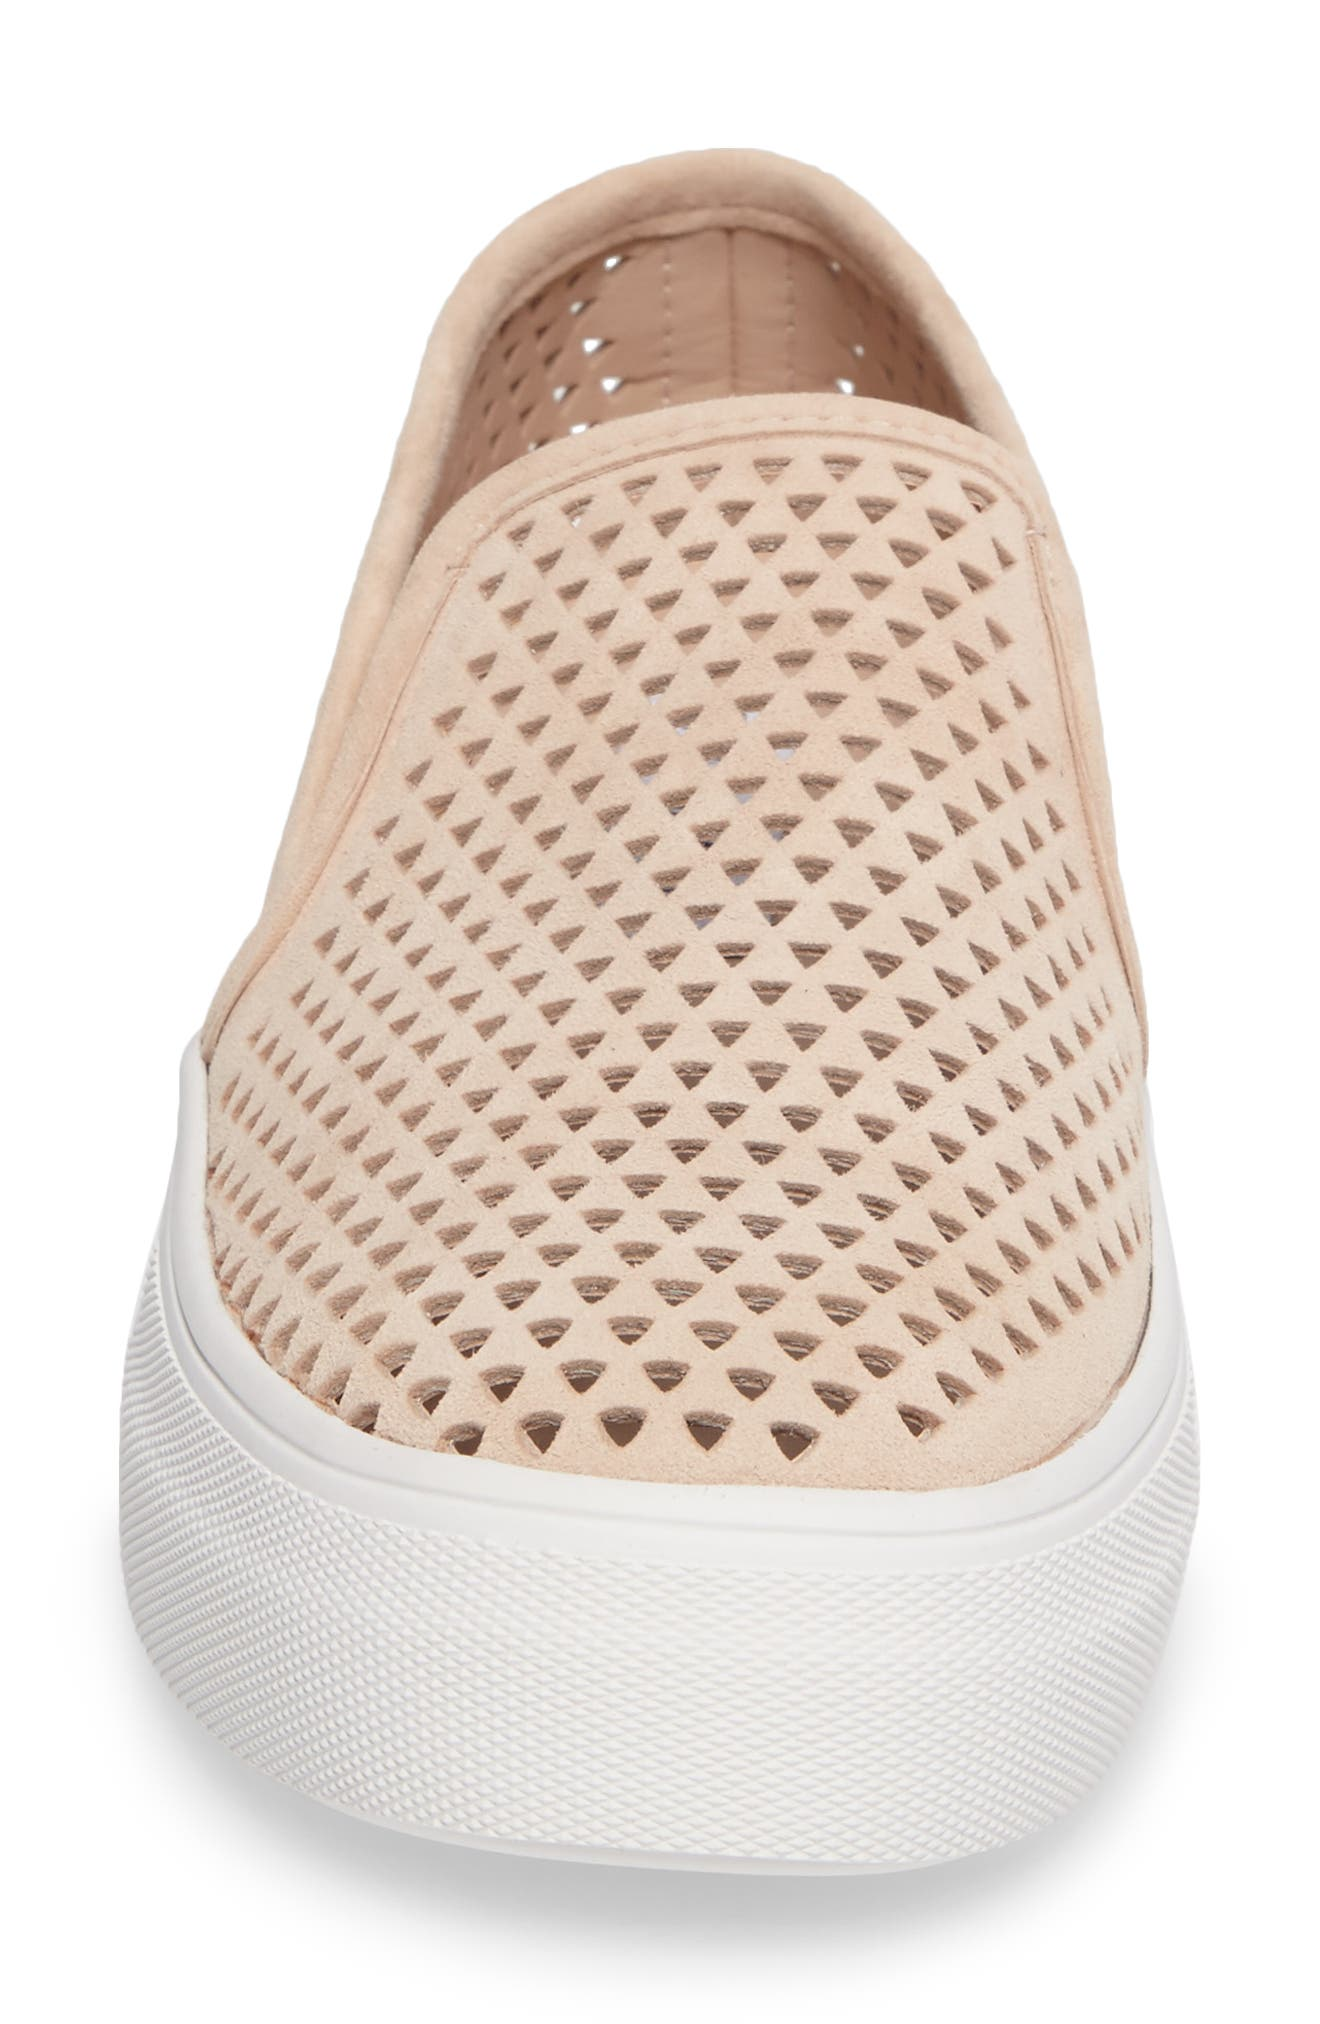 Gills Perforated Slip-On Sneaker,                             Alternate thumbnail 4, color,                             Natural Suede